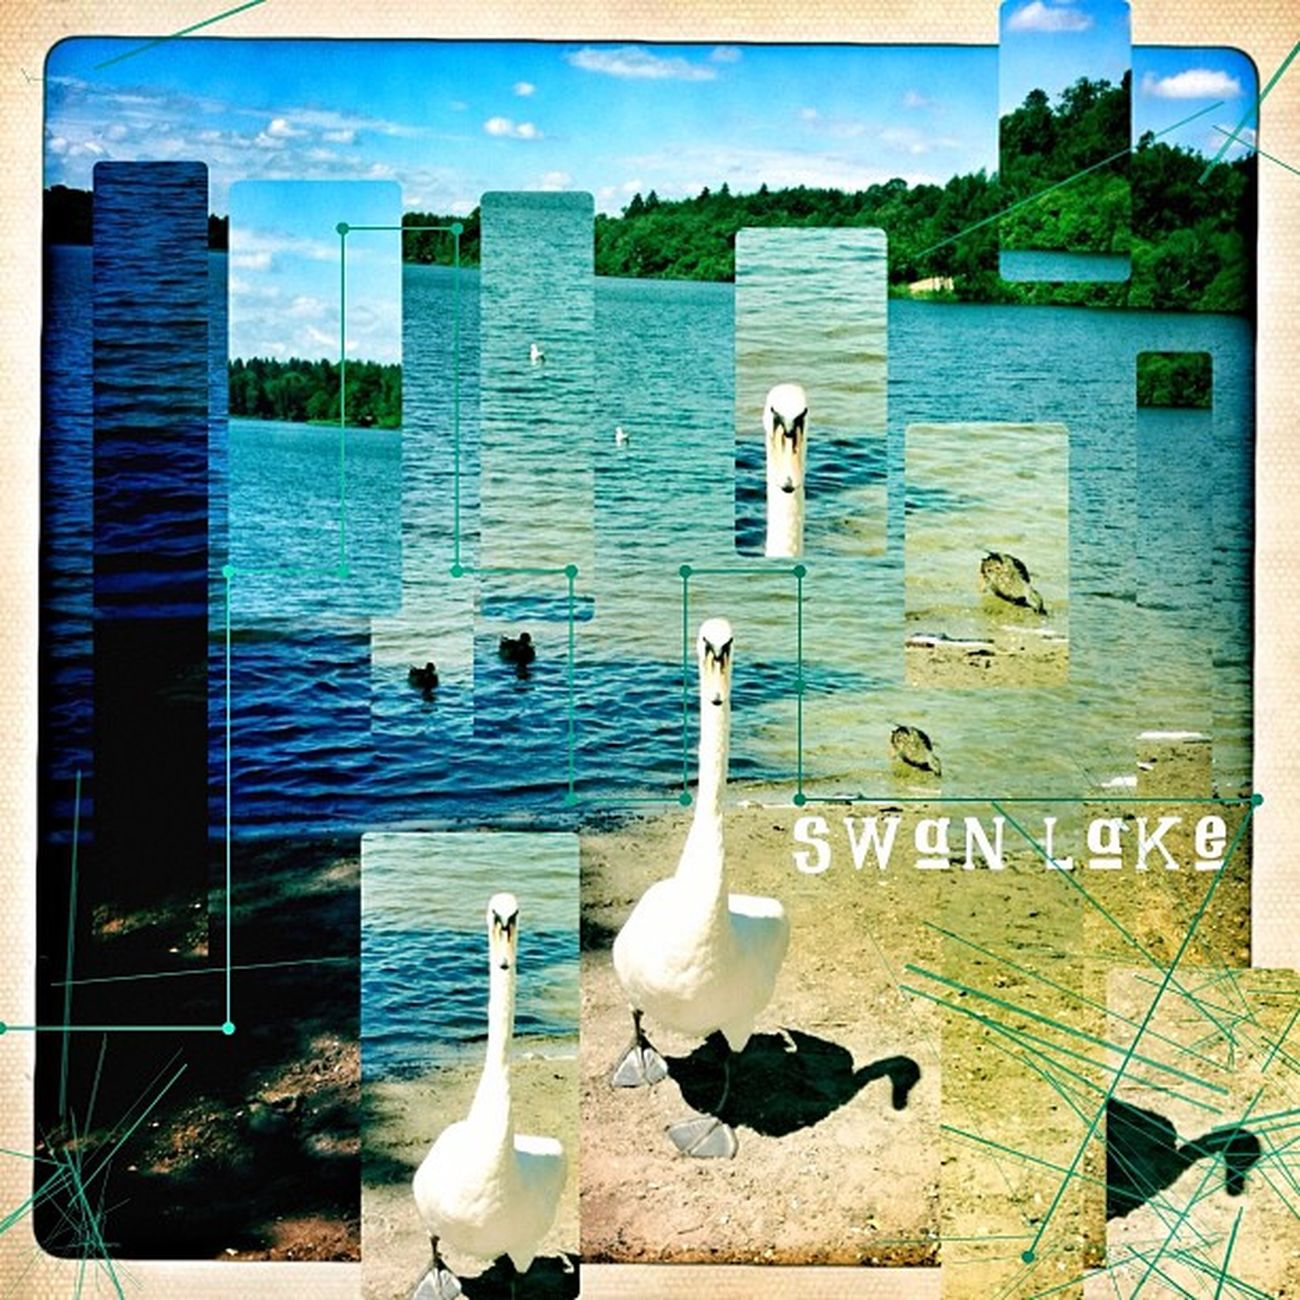 Sean Lake.#Snapseed #ampt_community #ampt #igers #tryingout #tinyshutter #tinyshuttercontest #swan #lake #surrey #verginiawater #instascoop # Mobfiction Lake Swan AMPt Surrey Snapseed AMPt_community Igers Tinyshutter Tryingout Instascoop Tinyshuttercontest Verginiawater